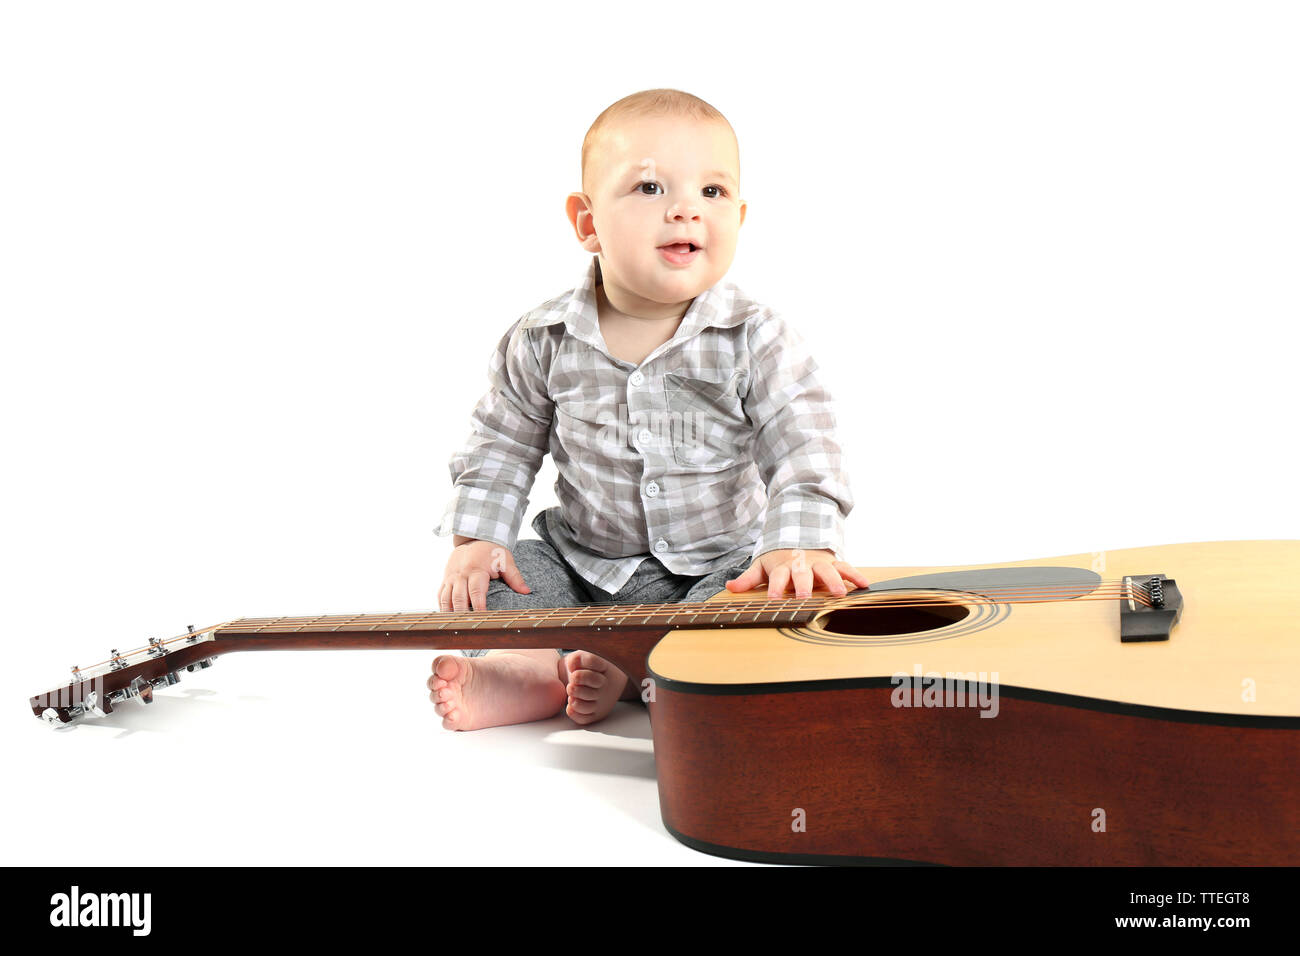 Baby With Guitar Stock Photos & Baby With Guitar Stock